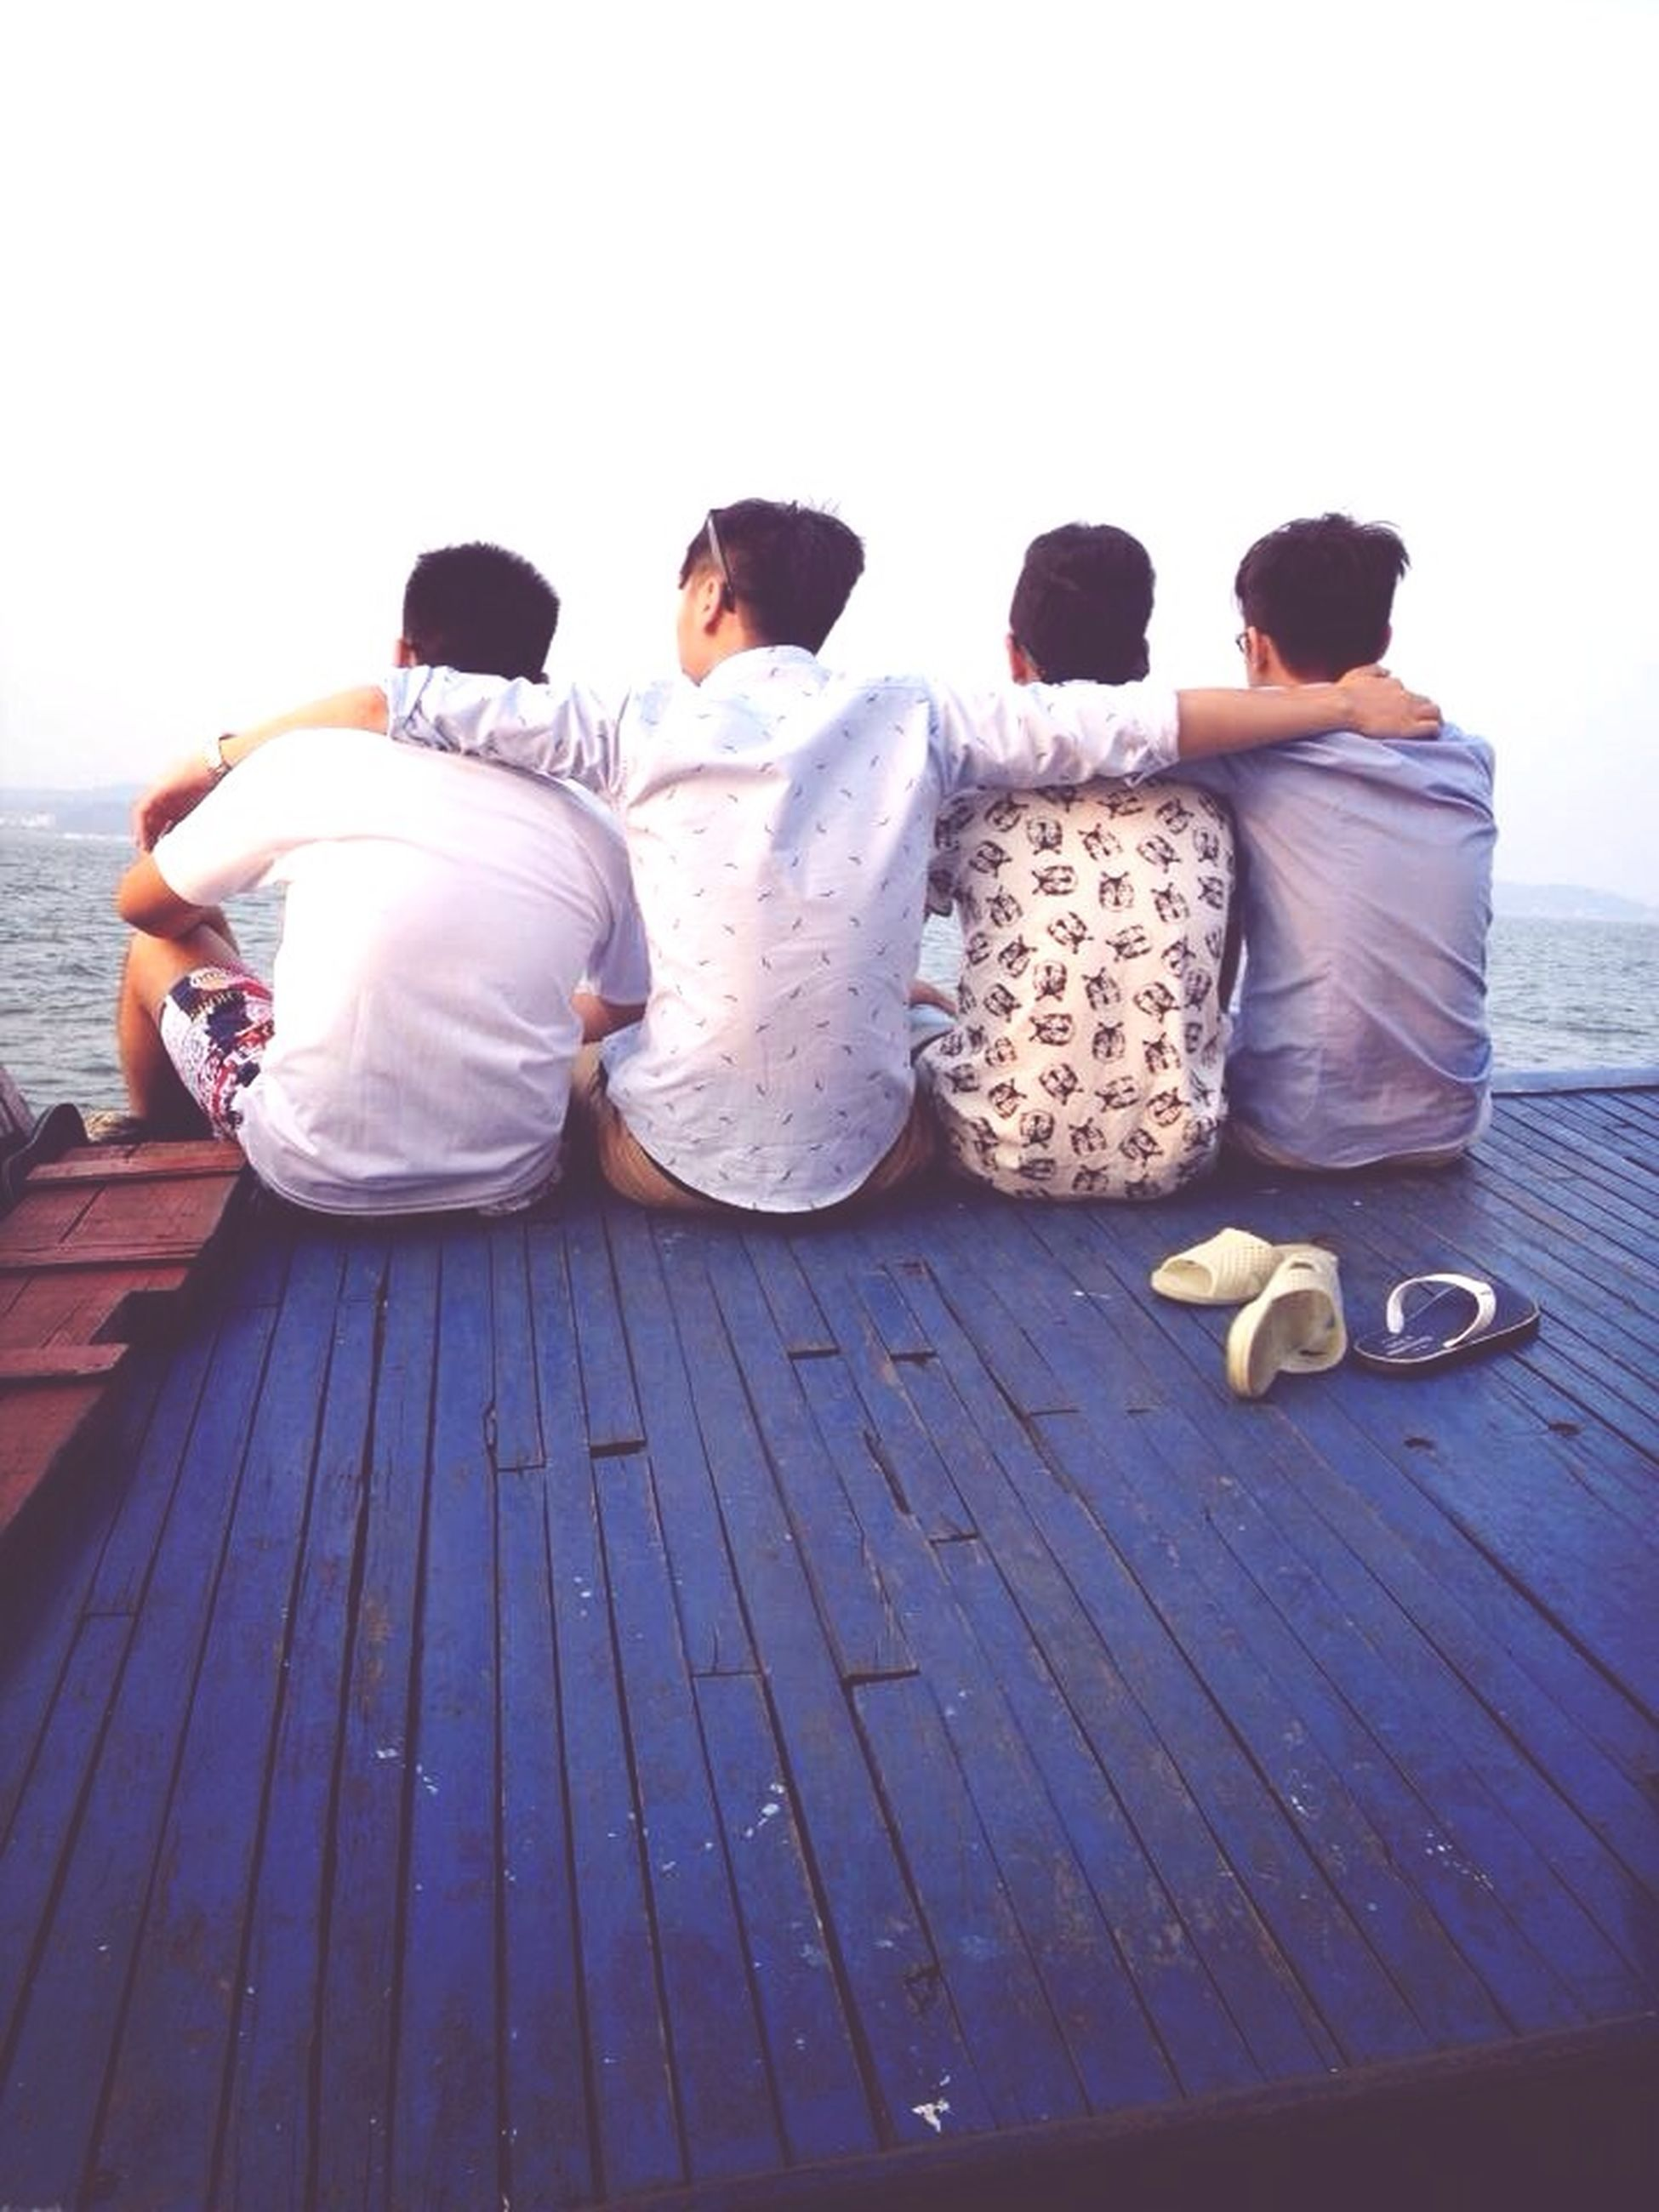 rear view, lifestyles, leisure activity, togetherness, men, full length, sitting, clear sky, casual clothing, relaxation, person, bonding, water, copy space, standing, sea